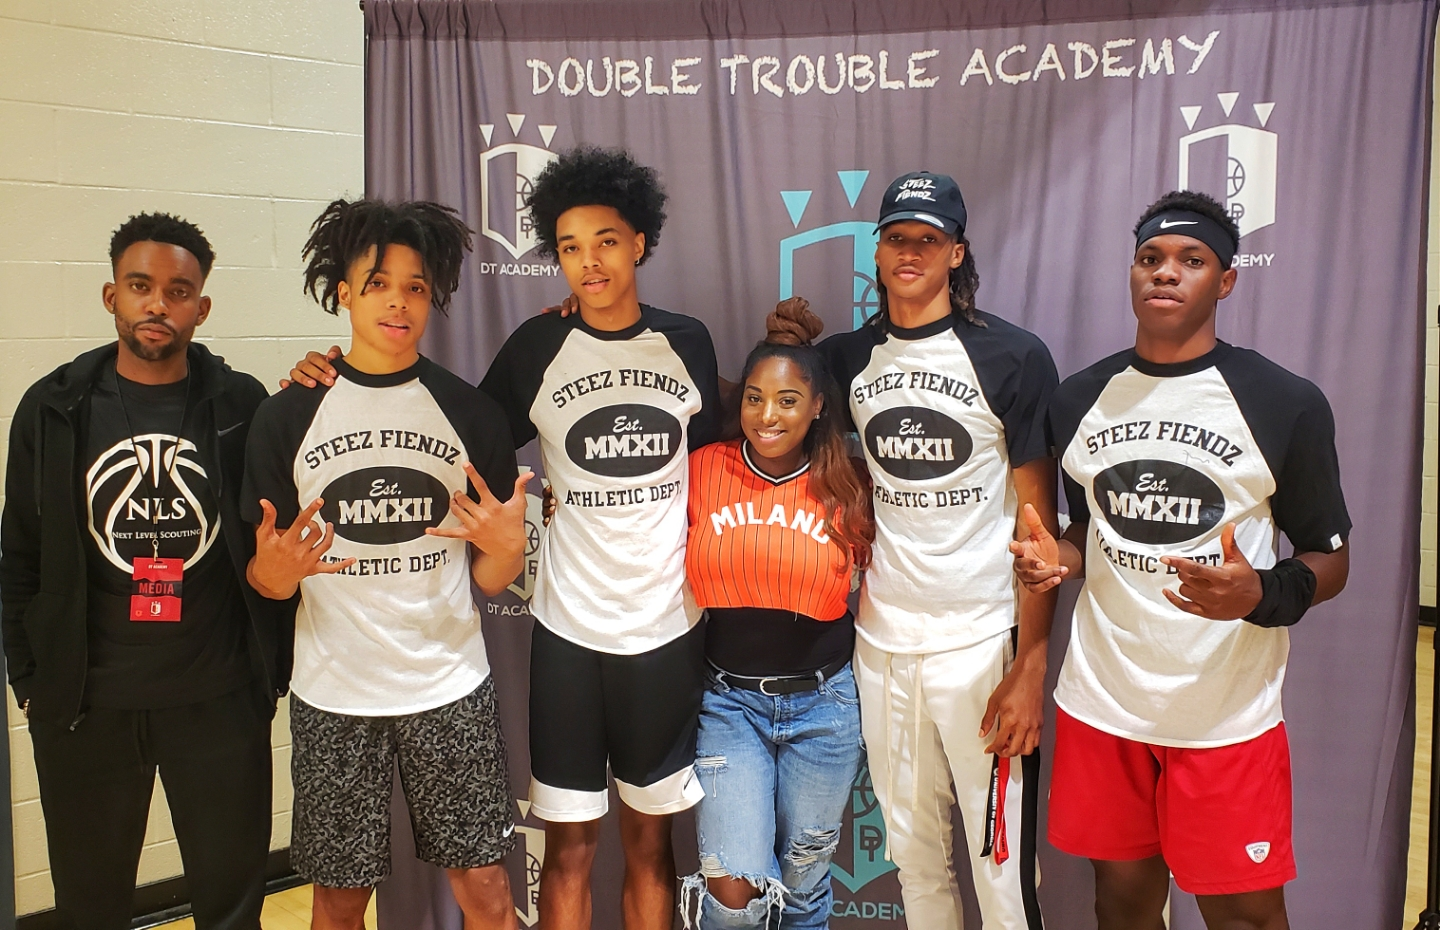 DTAcademy Camp - In Photo: Nextlevelscouting, Caleb Murphy, Brandon Boston, Georgia 'JoJo' Aubrey Toppin, Kiel Godwin